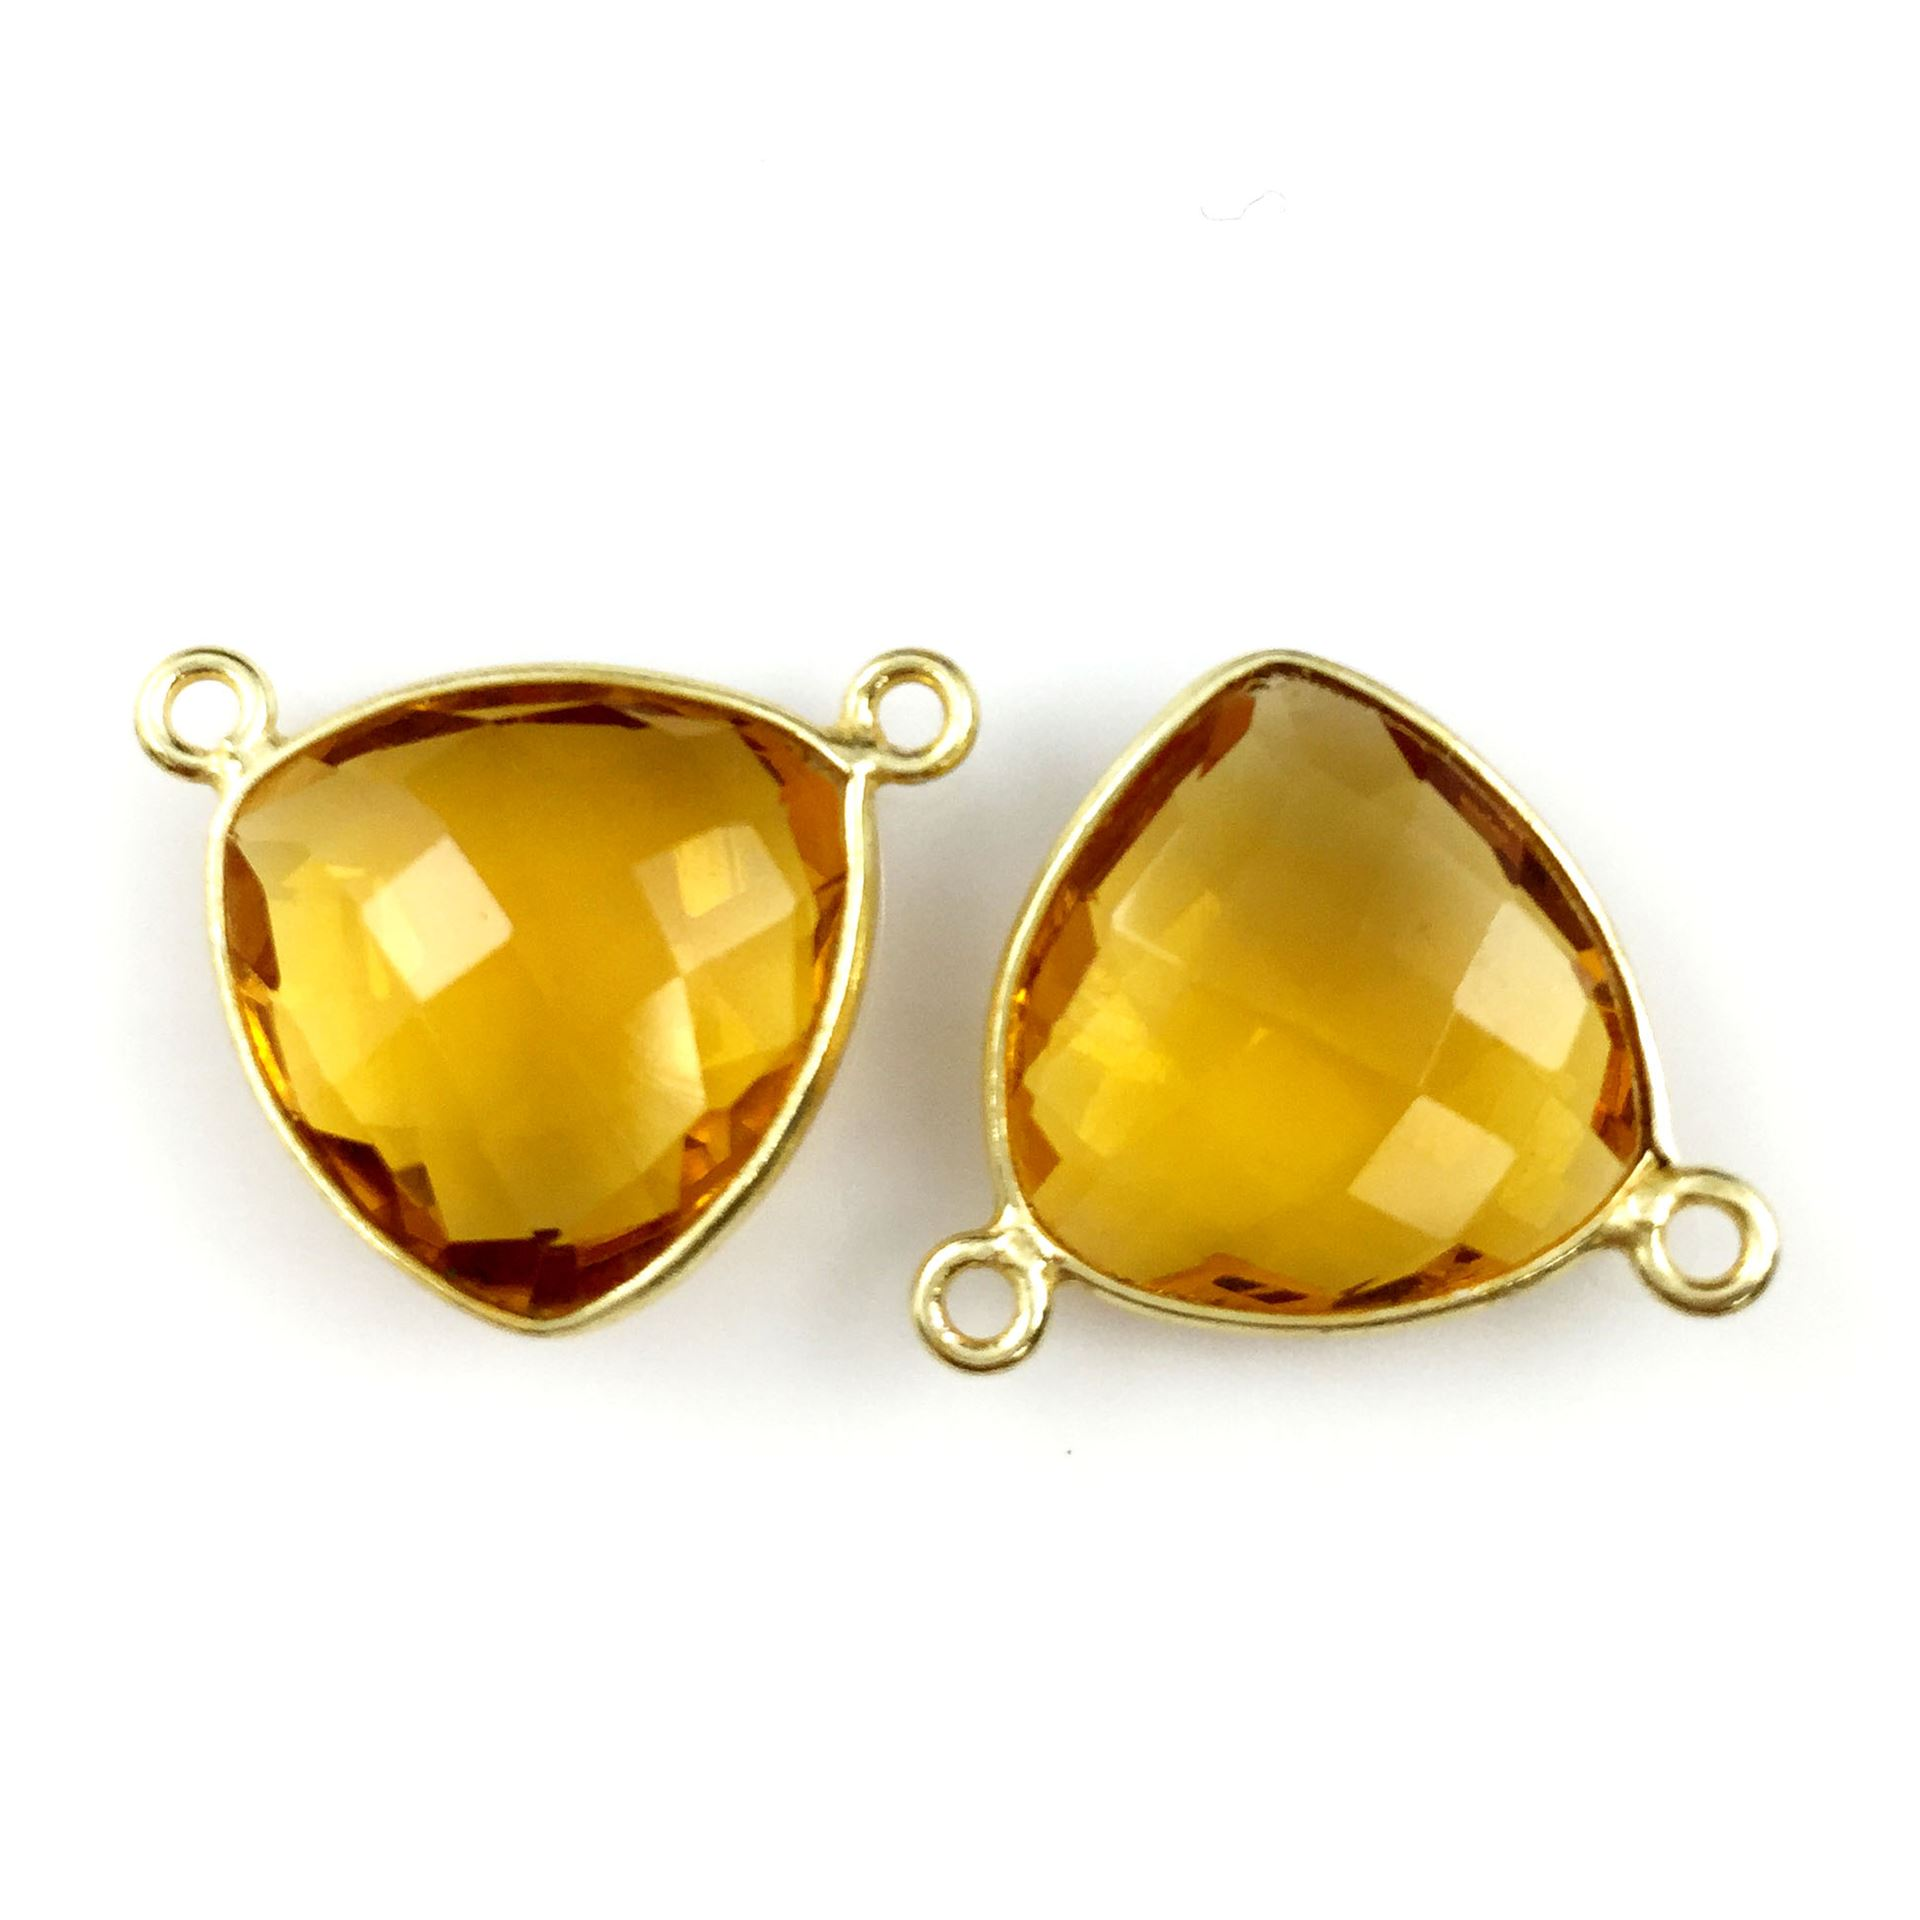 Bezel Gemstone Connector Pendant - Citrine Quartz - Gold plated Sterling Silver - Small Trillion Shaped Faceted - 15mm - 1 piece